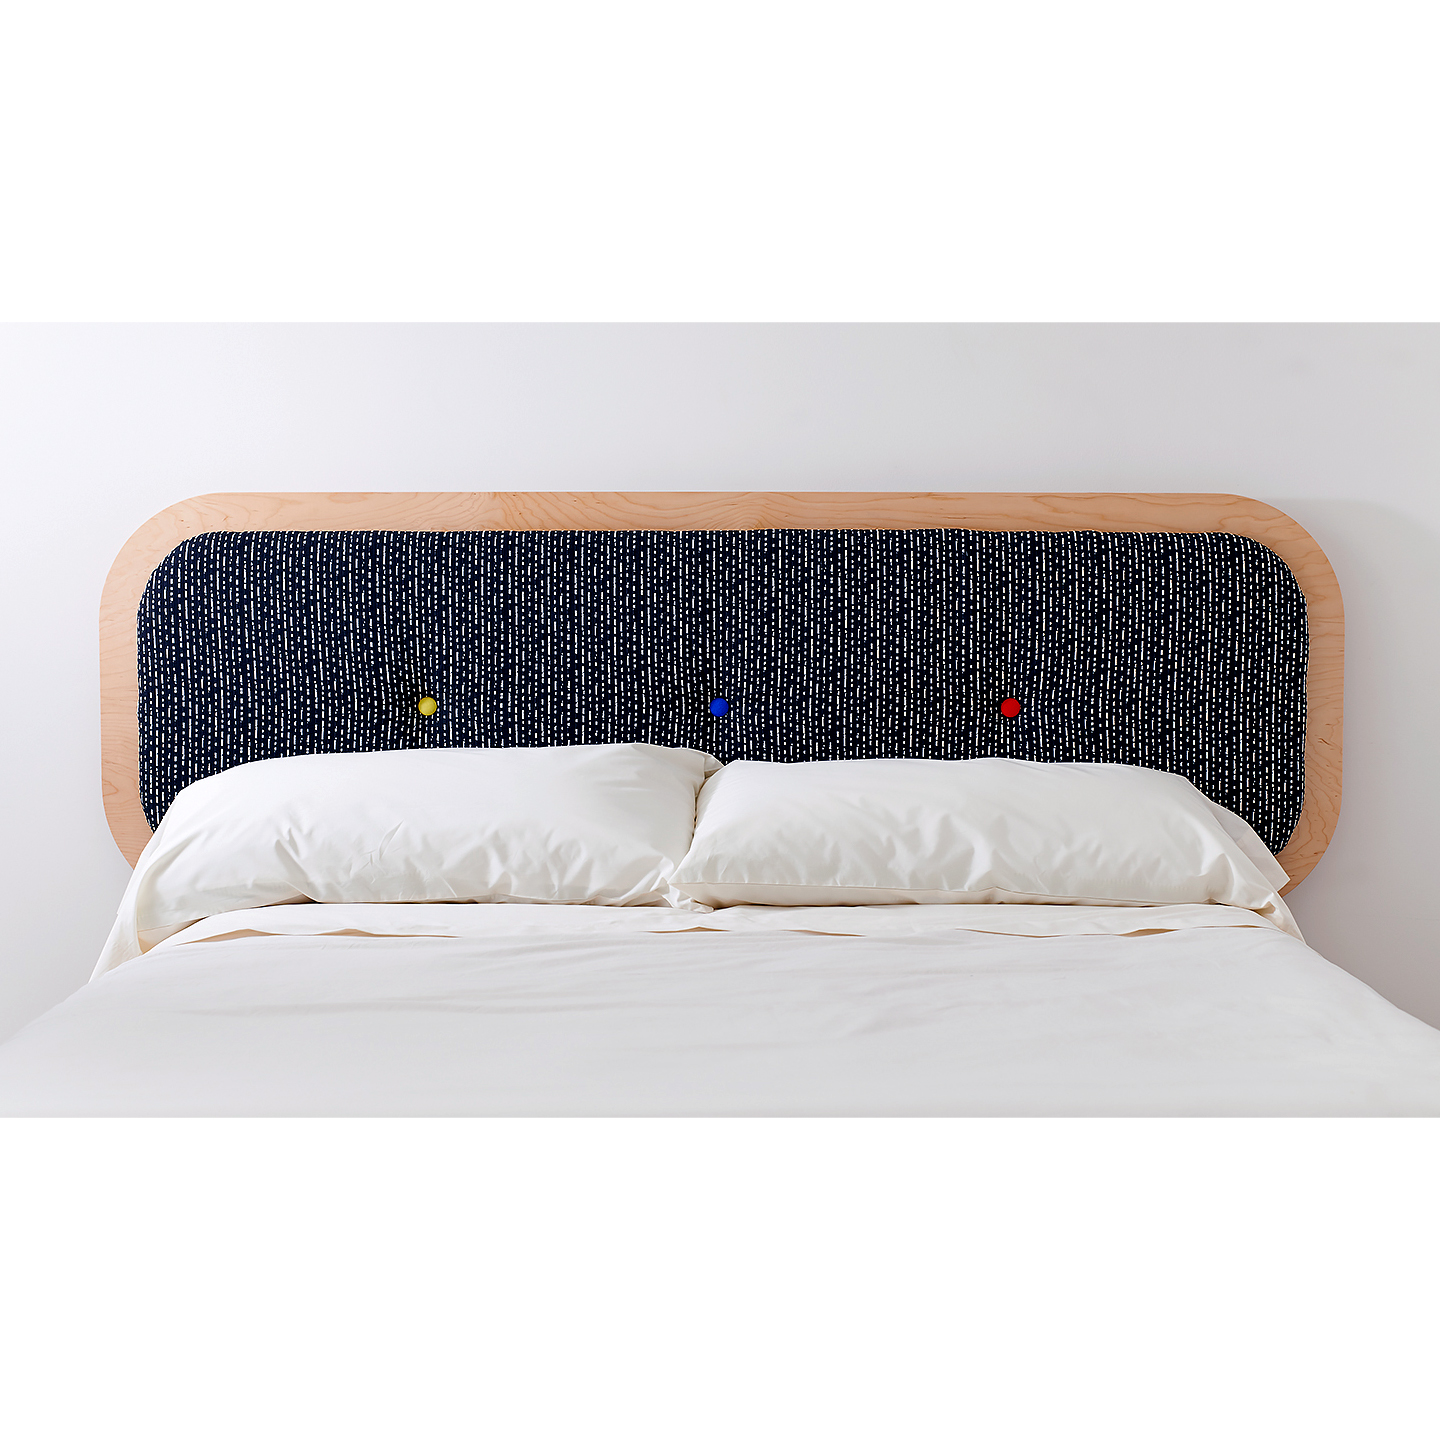 headboard_digitalblizzard_whtr_sq.jpg